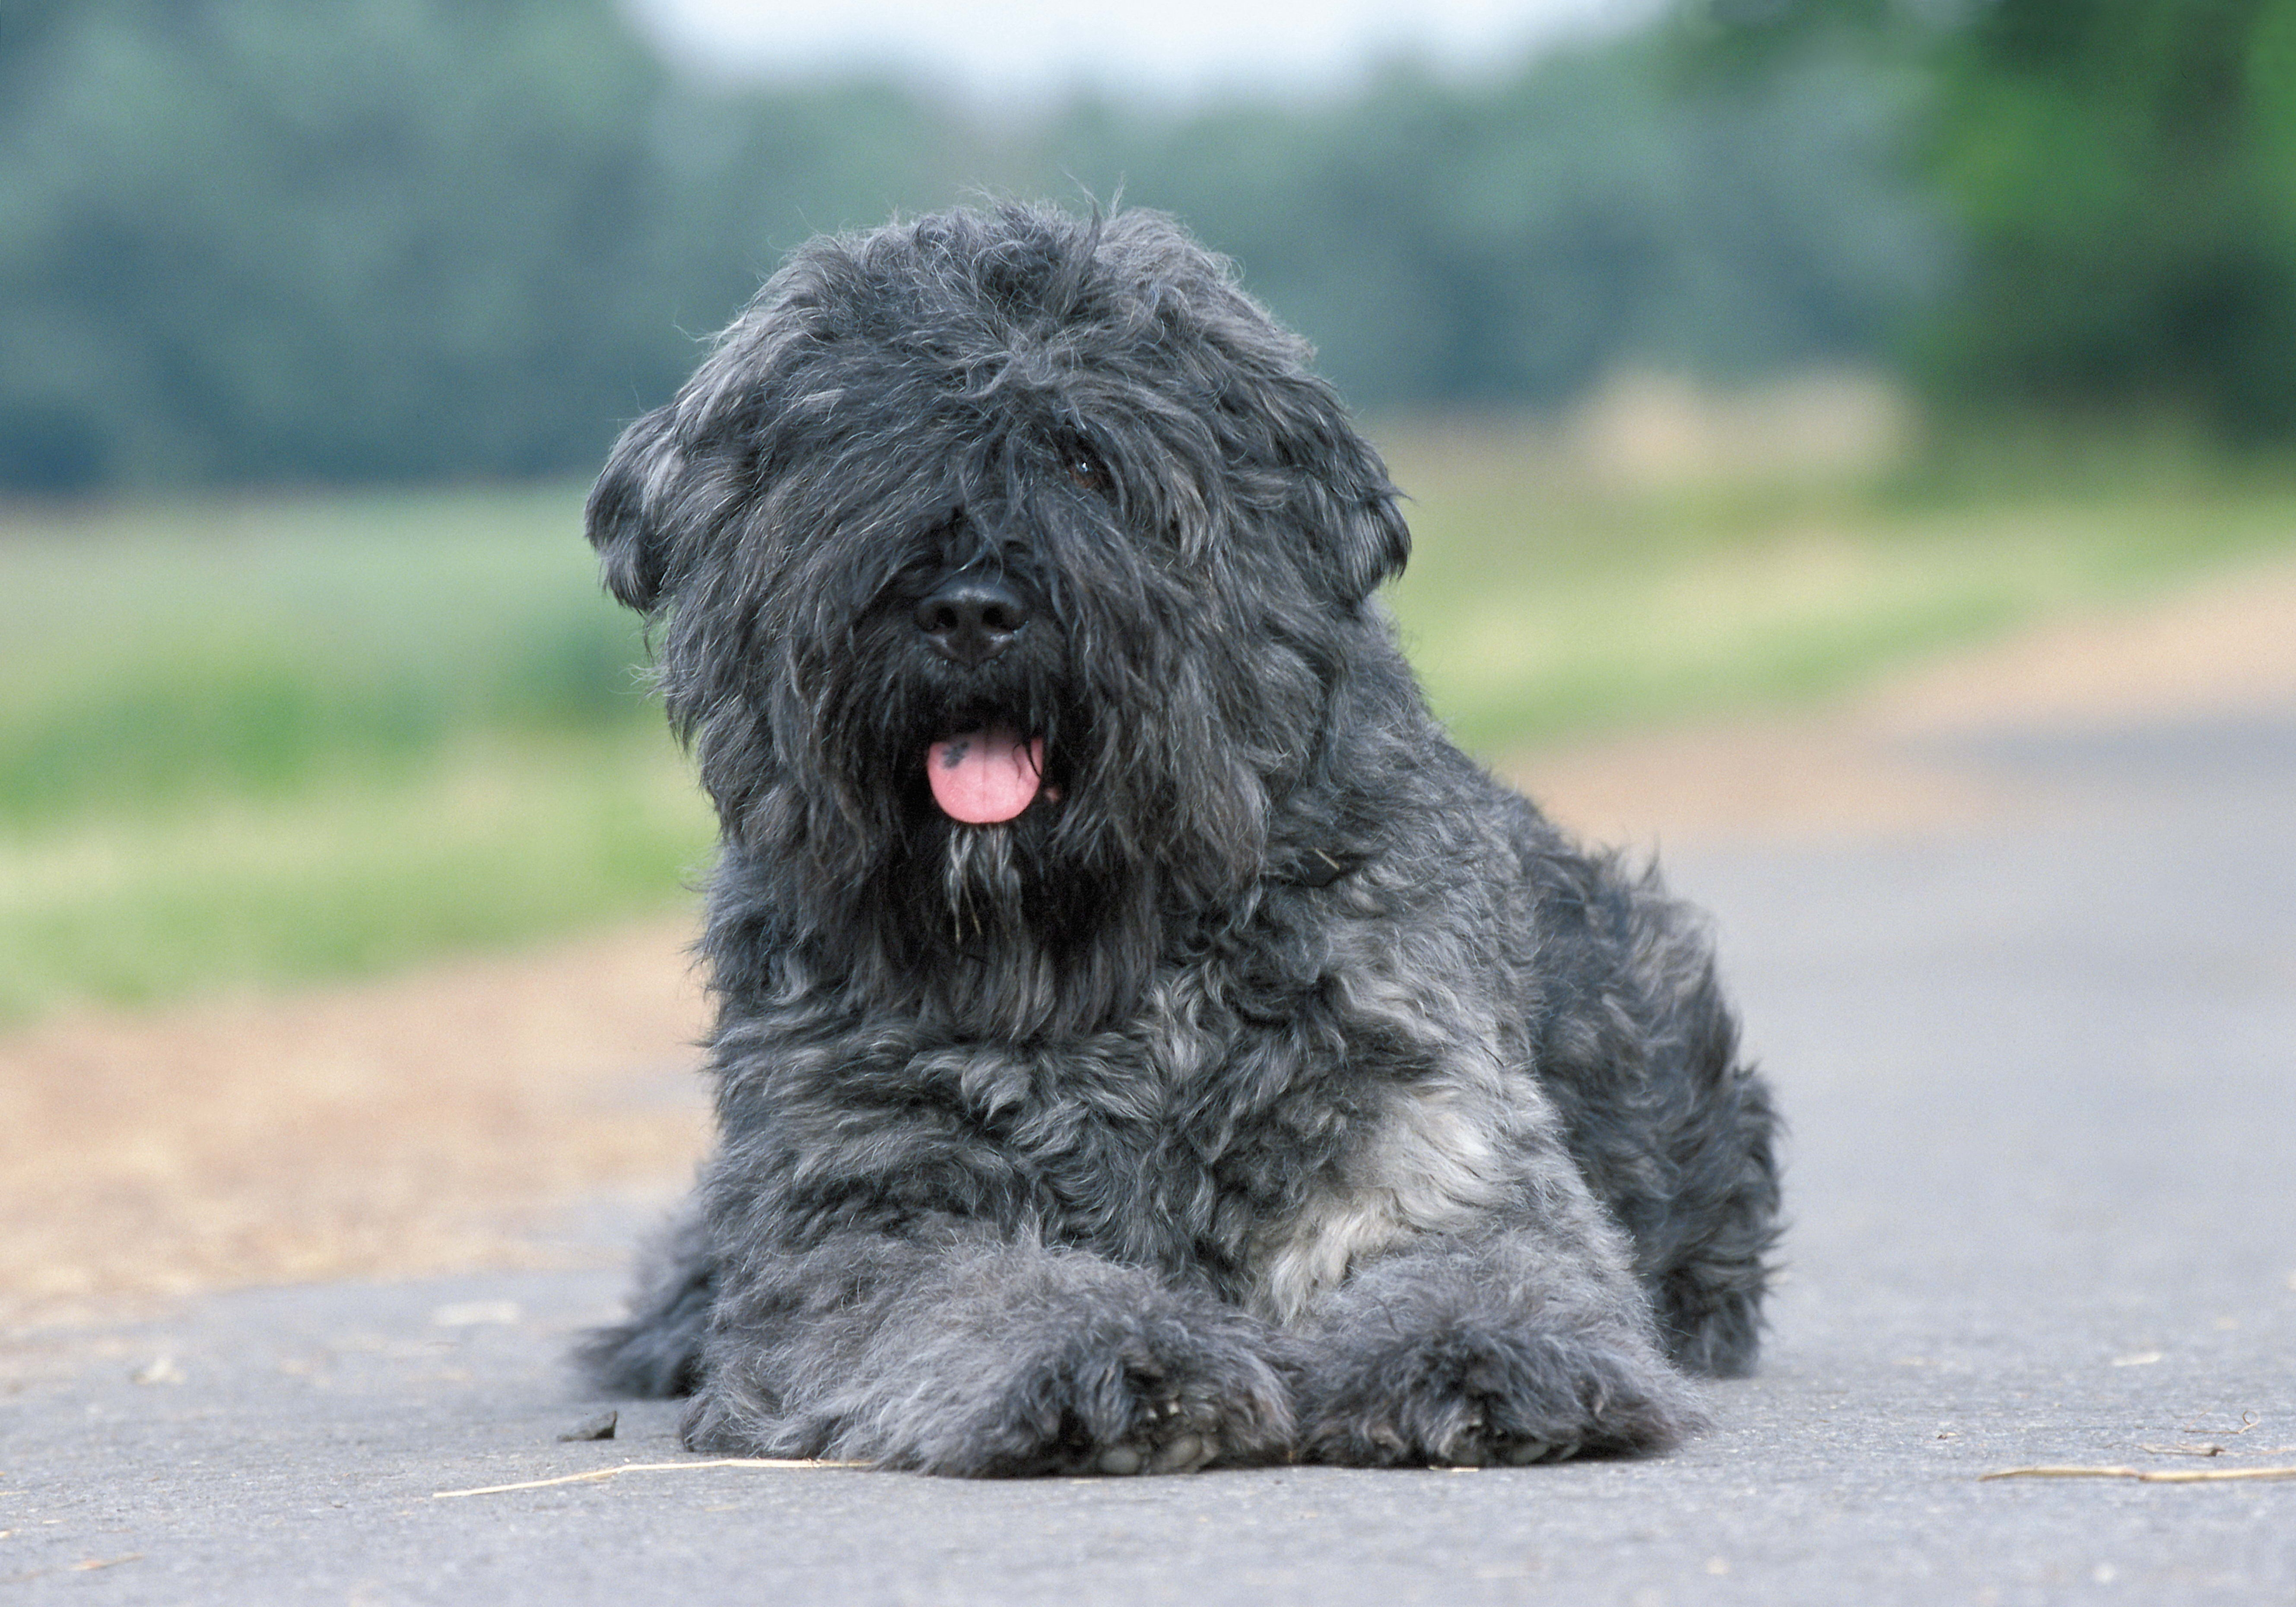 75478 download wallpaper Animals, Dog, Wool, Asphalt screensavers and pictures for free